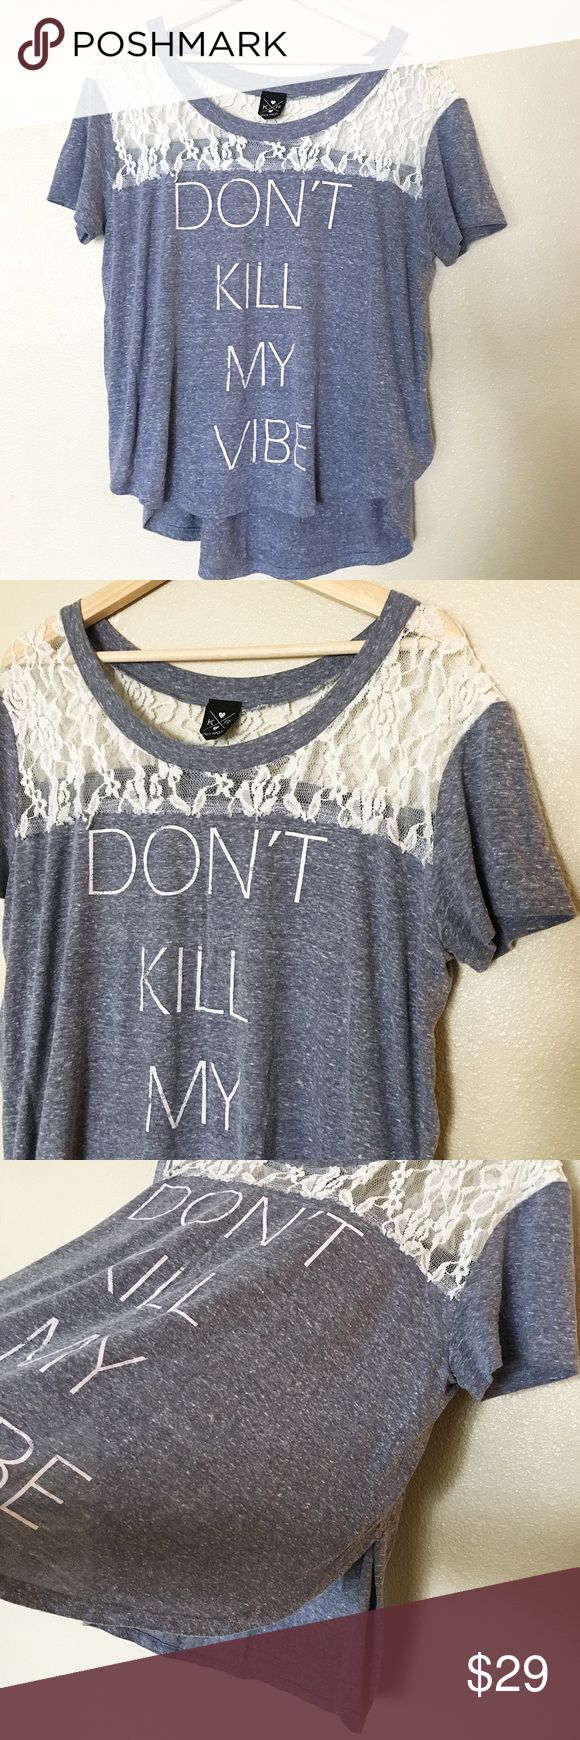 """Soft Gray And Lace """"Don't Kill My Vibe"""" Shirt Perfect for Coachella or any summer music festivals! Super soft and loose fitting hi-lo shirt with pretty lace detail. Has slits on side of the shirt so you can wear a fun bright top underneath or bare a bit of skin when you move. Pair it with black leggings or denim shorts or something colorful and patterned. Bought from a boutique in Las Vegas and wore once to a concert. In excellent condition. Knit Riot Tops"""